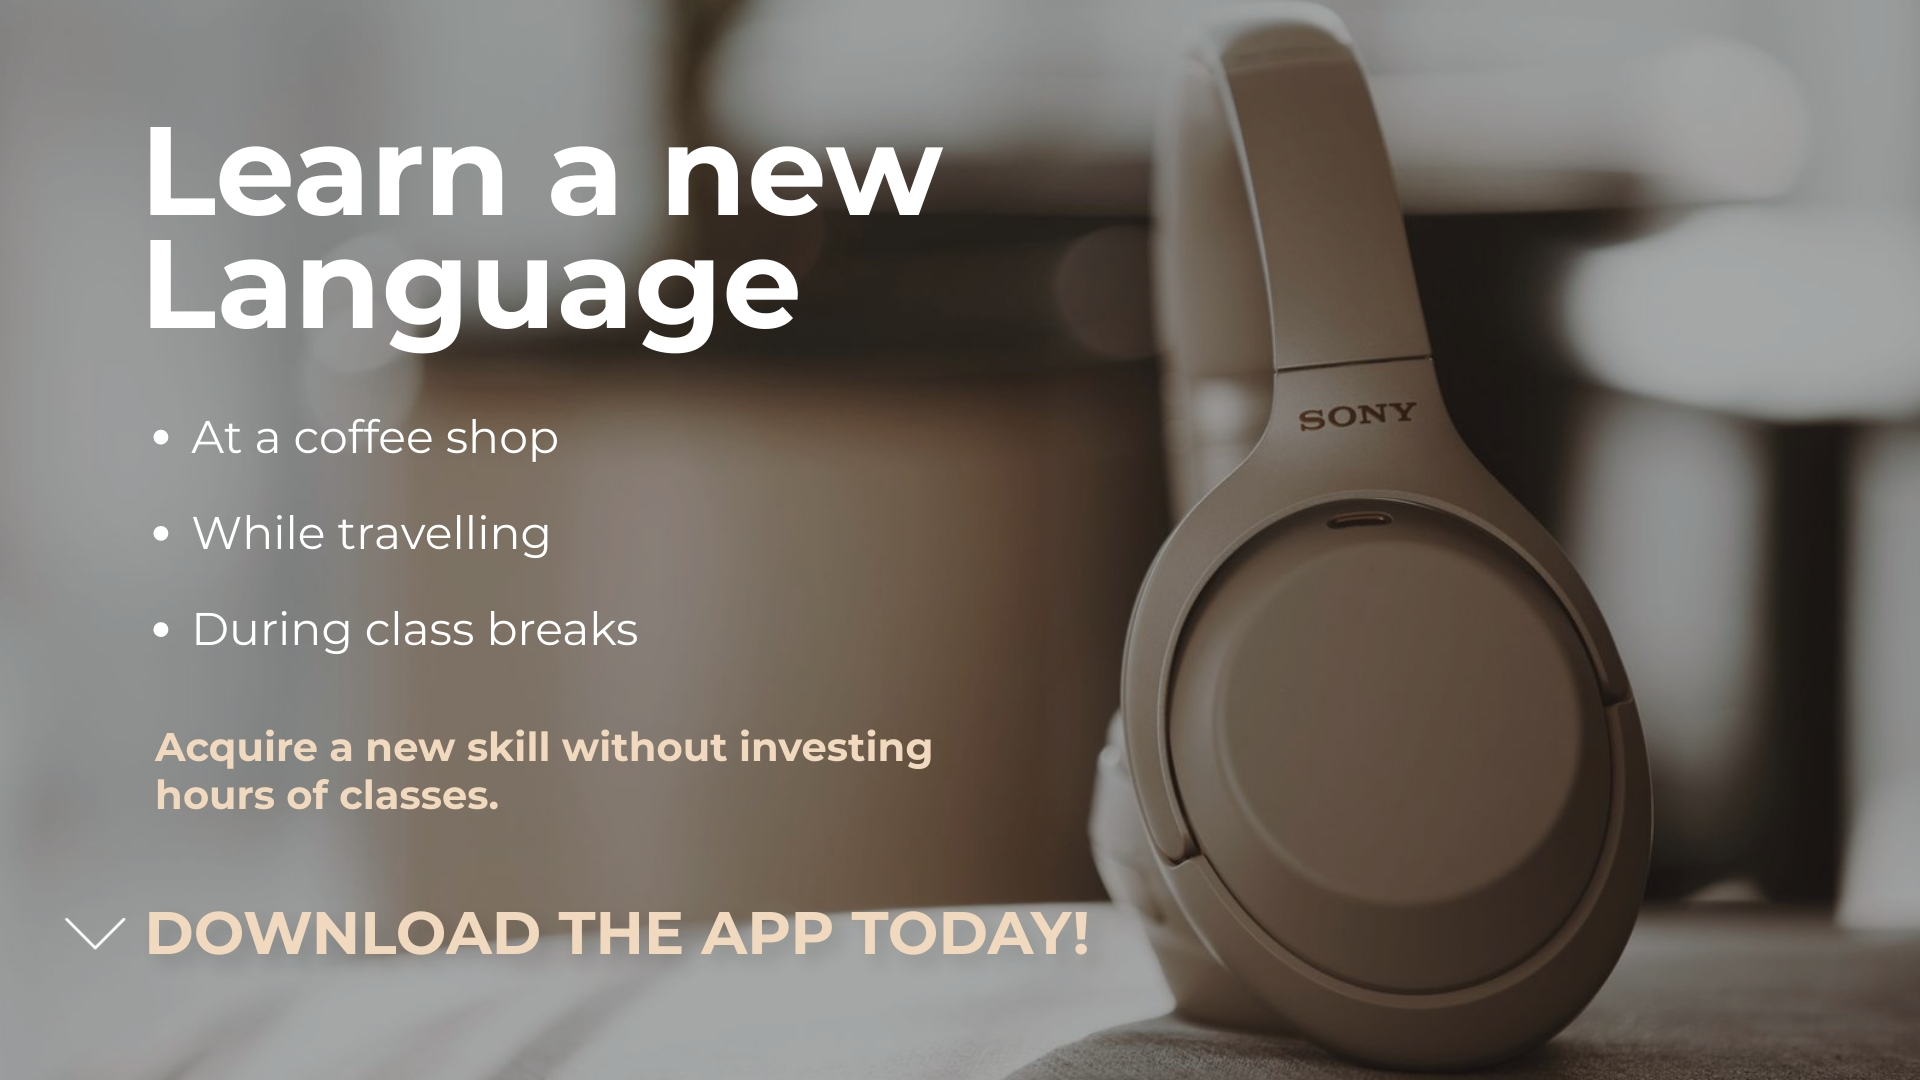 Language App - YouTube Video Ad Template